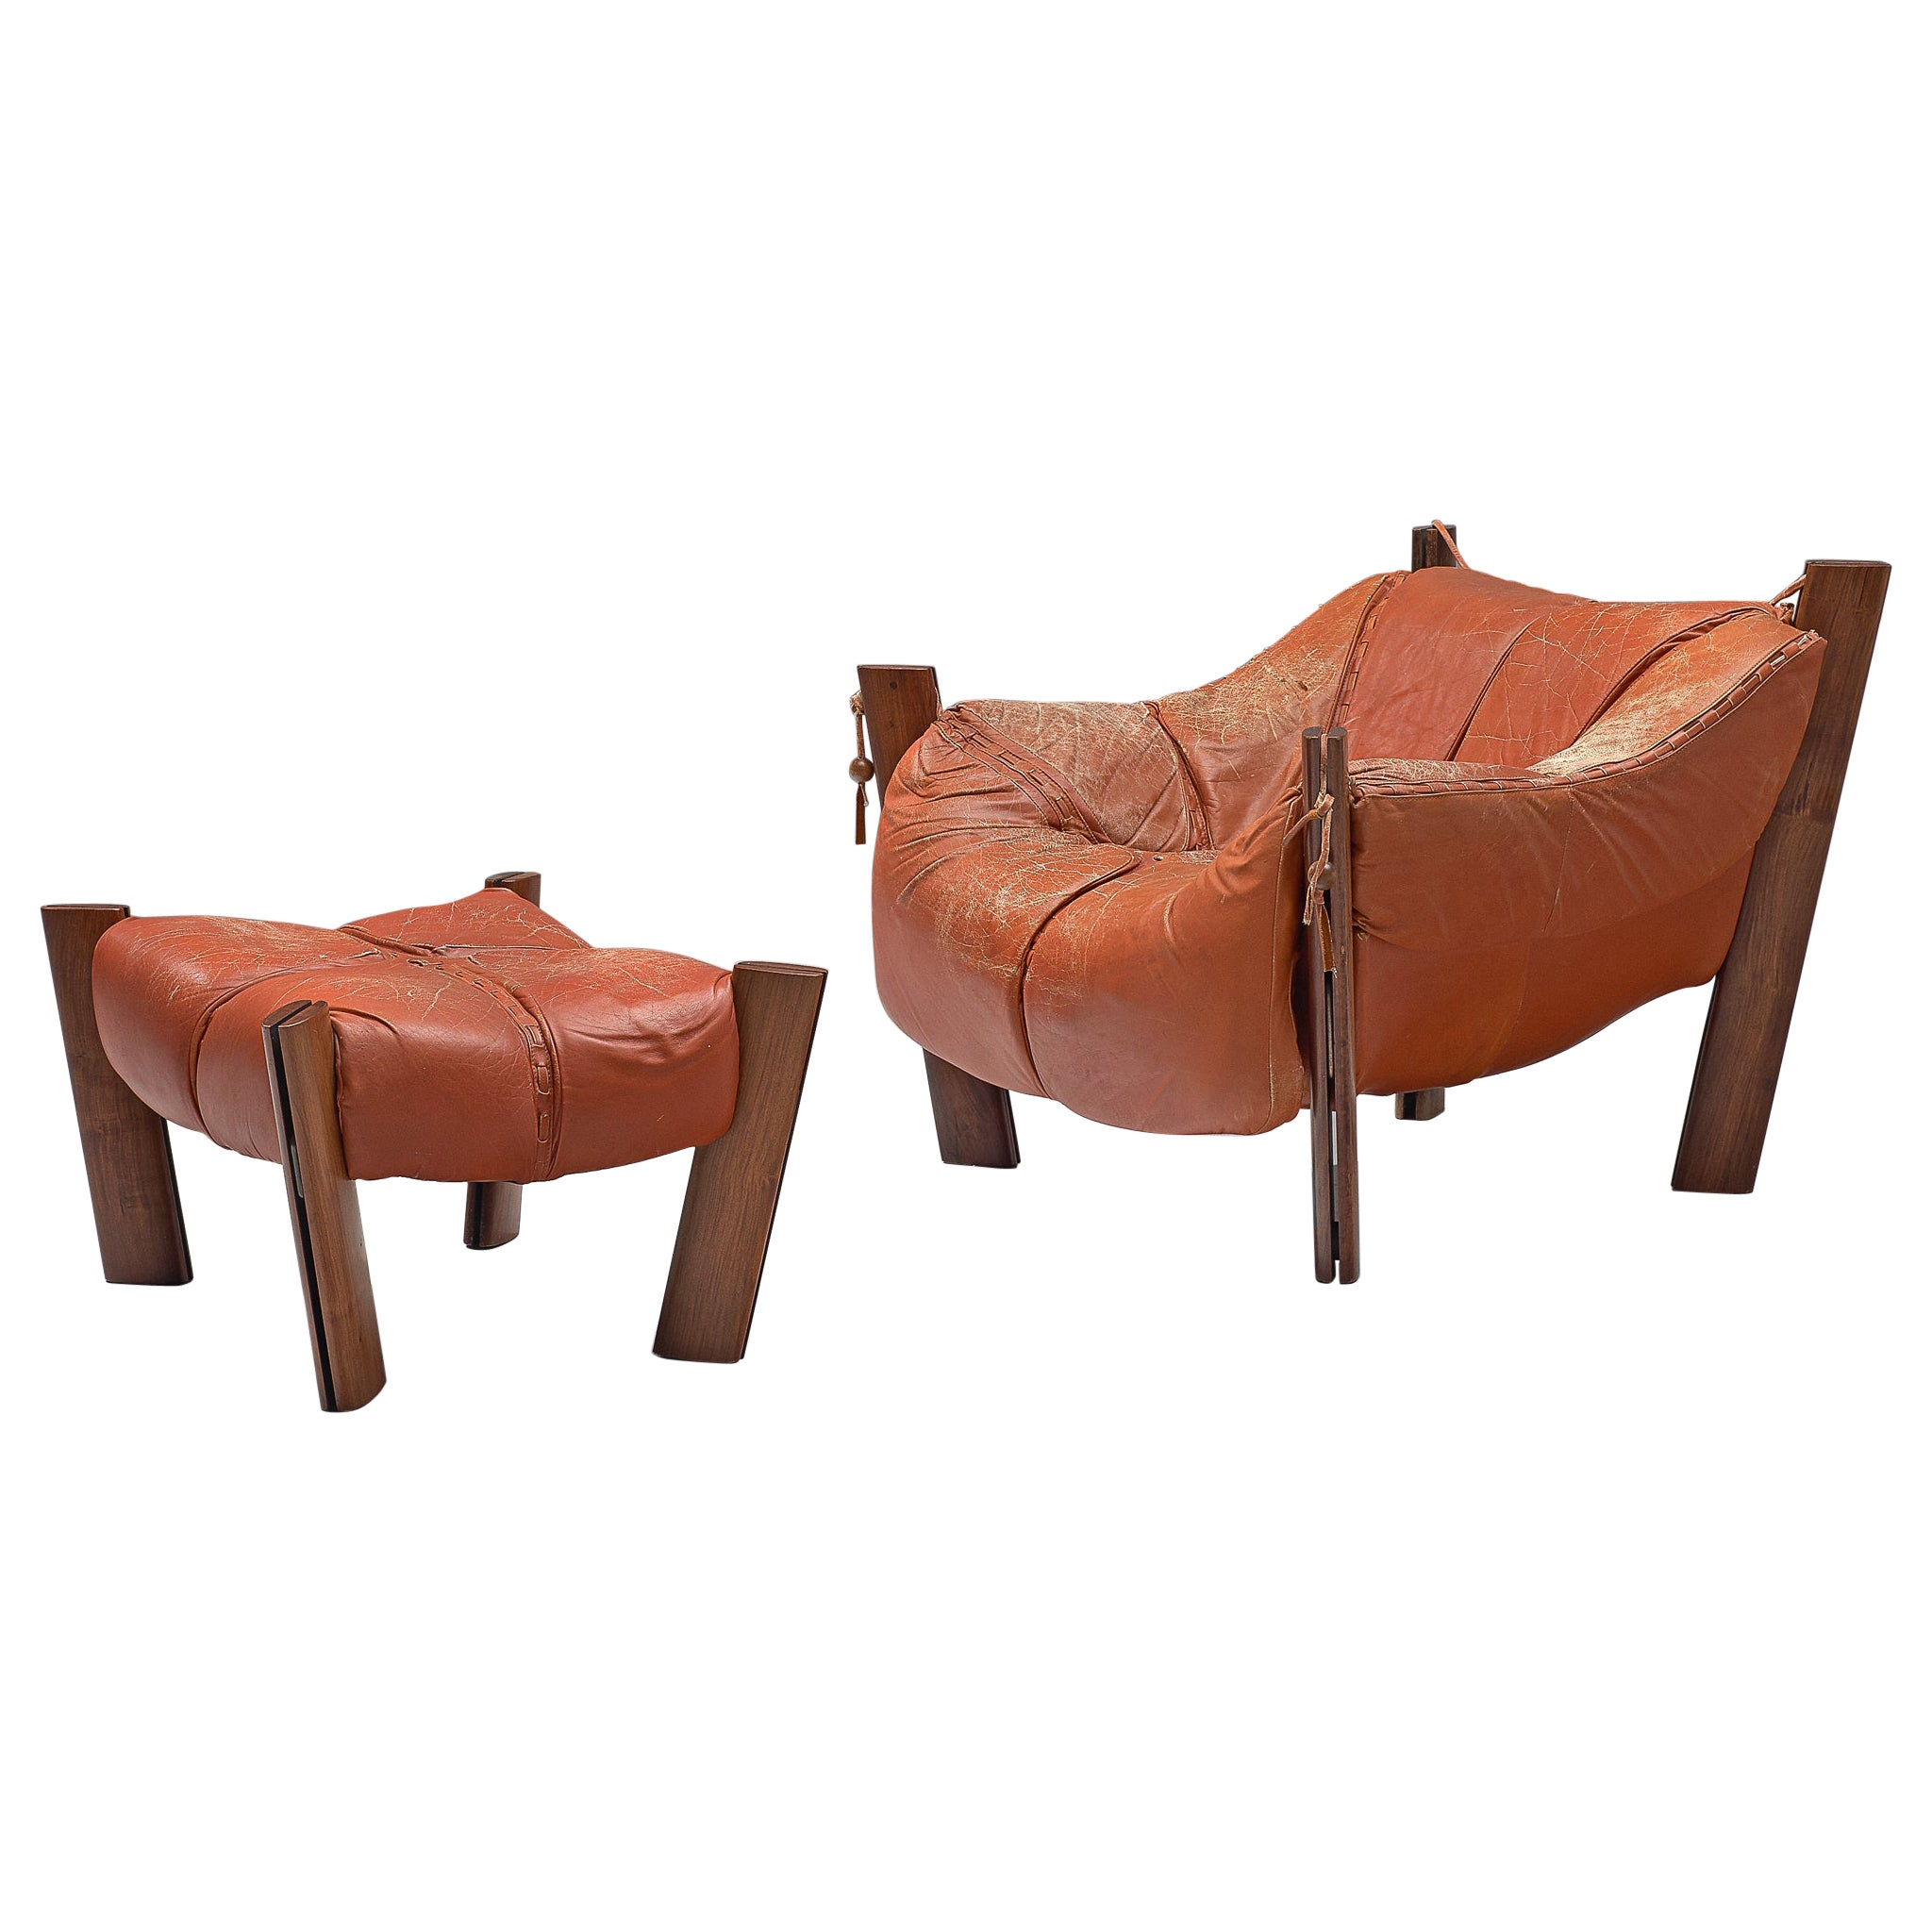 Percival Lafer Lounge Chair with Ottoman and Terracotta Leather